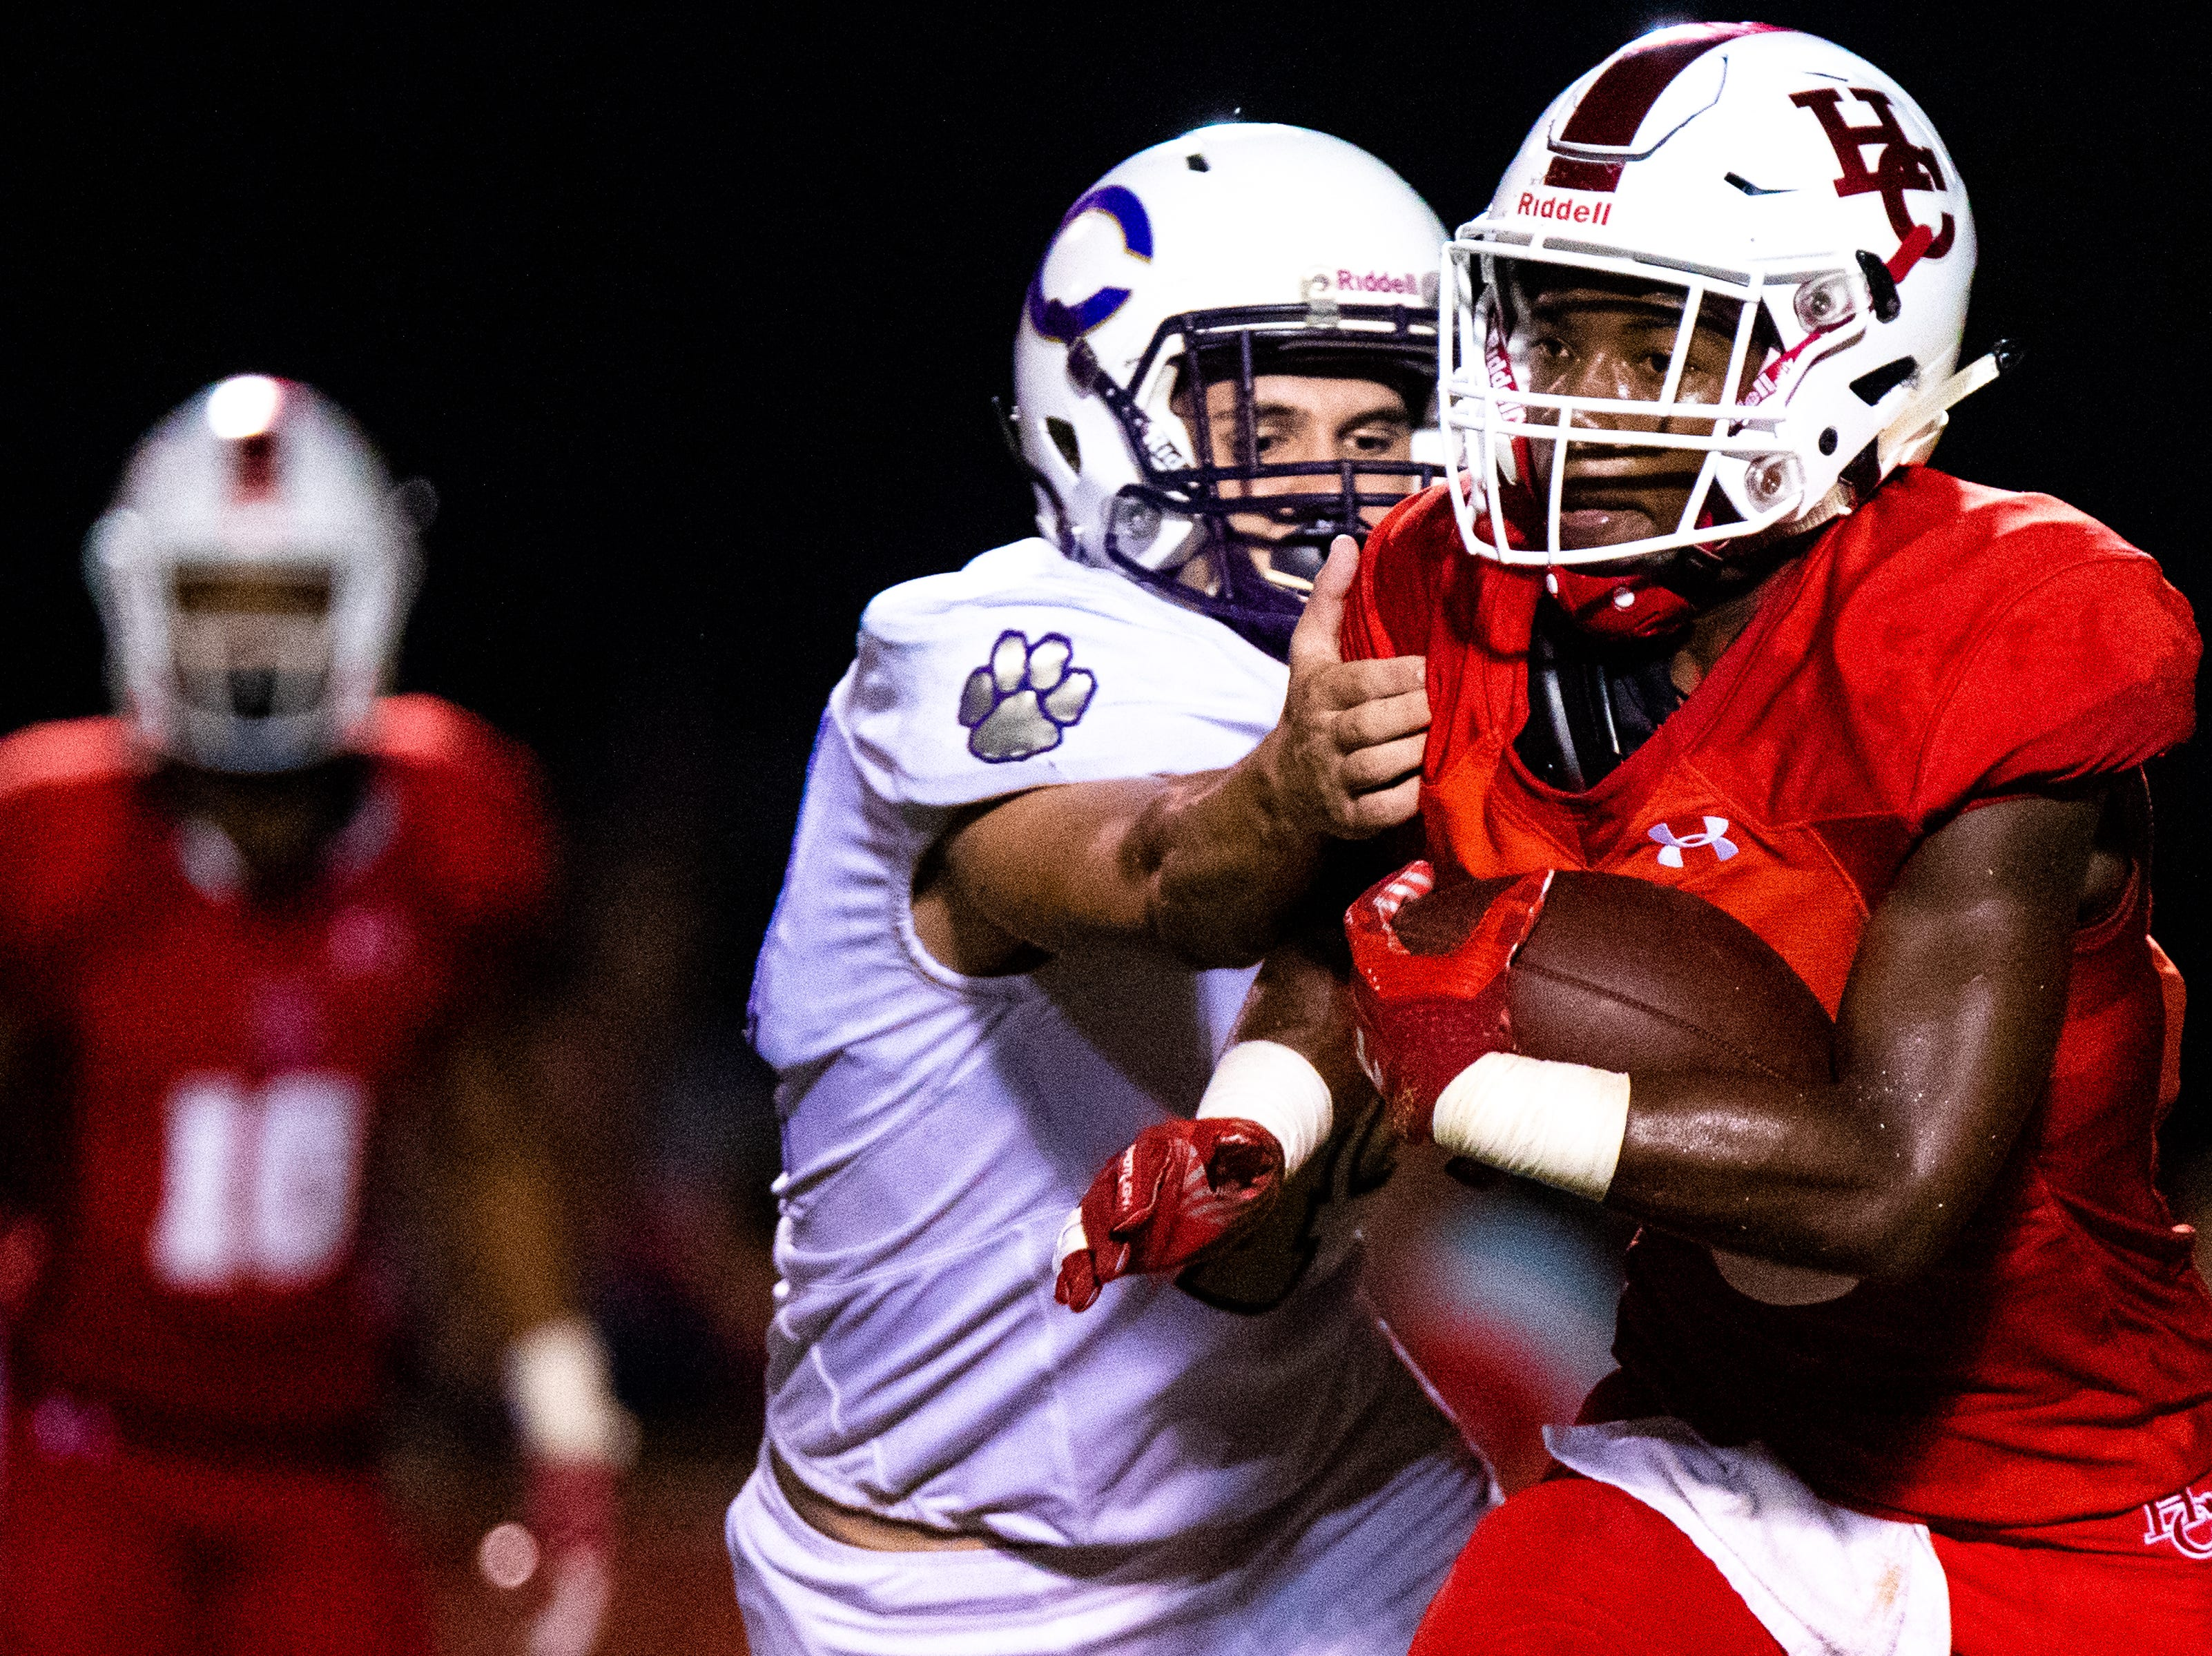 Jayln Foster (5) of Henry County runs the ball during the first half at Henry County Friday, Sept. 14, 2018, in Paris, Tenn.